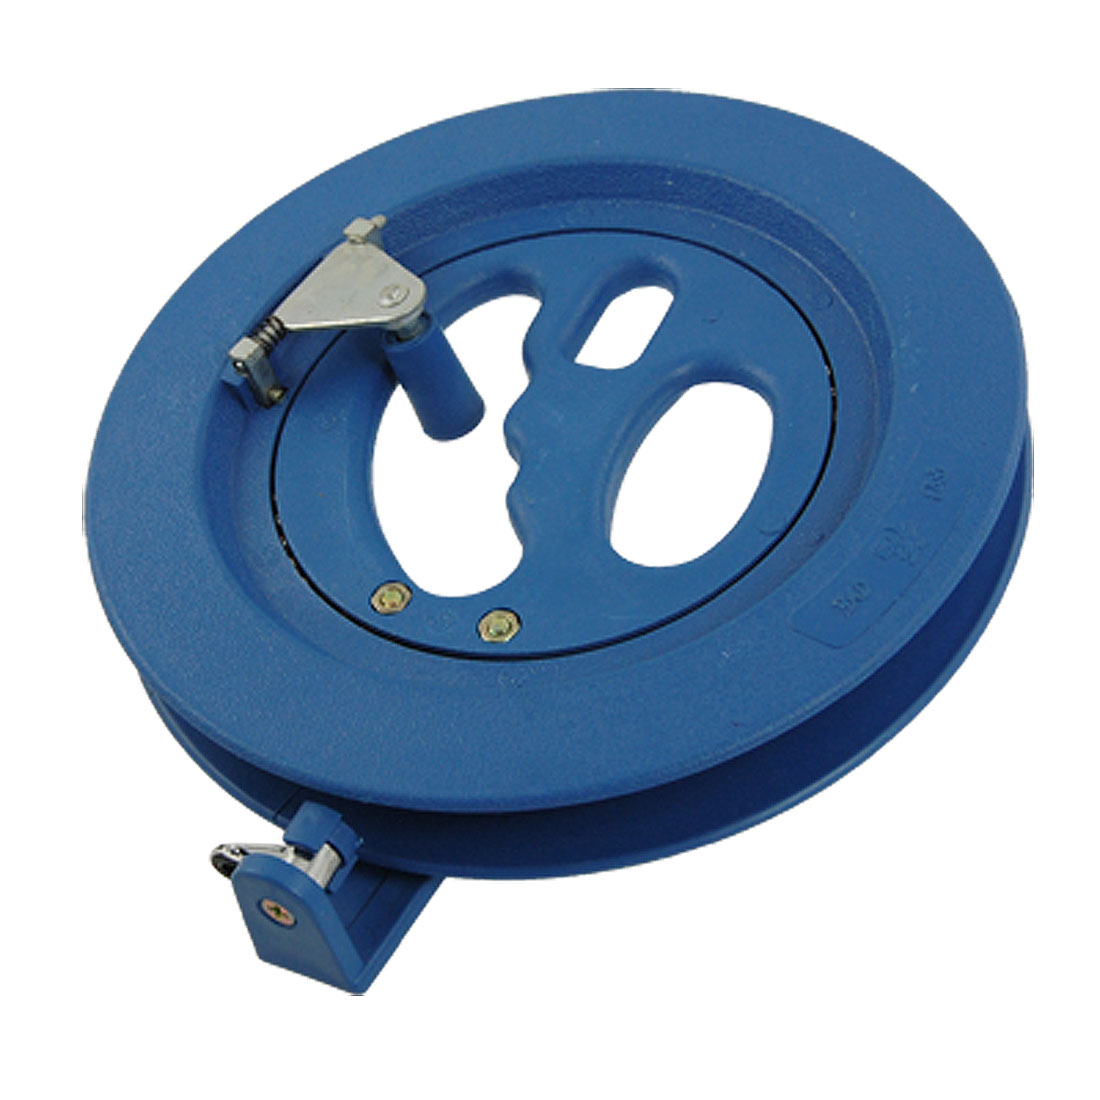 Outdoor Ballbearing Plastic Kite Flying Line Winding Reel Grip Winder Tools Blue